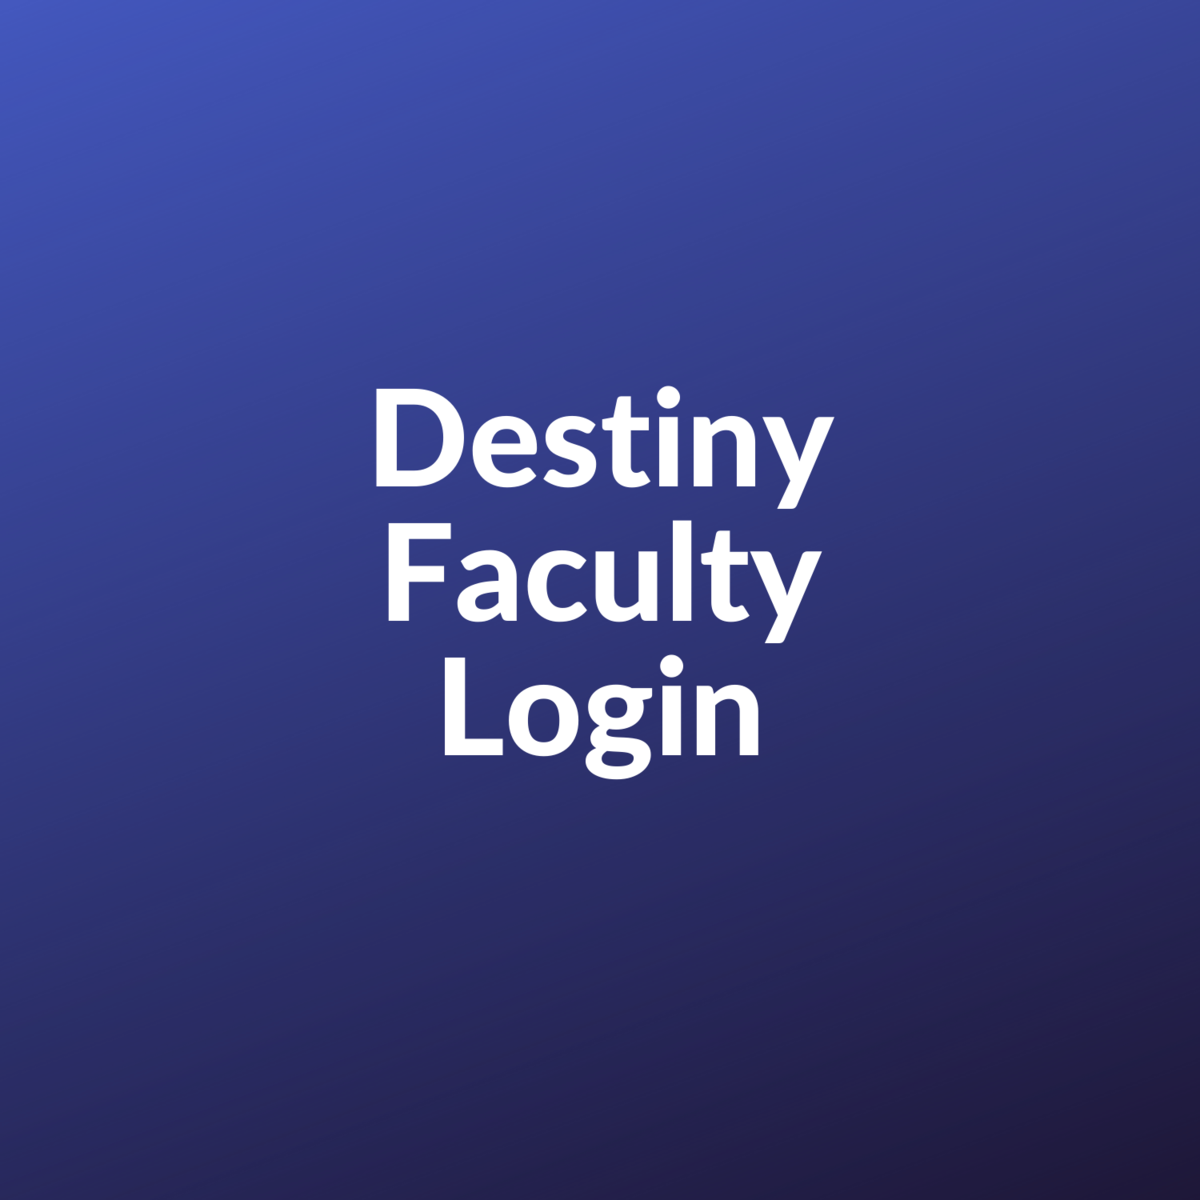 Destiny Faculty Login